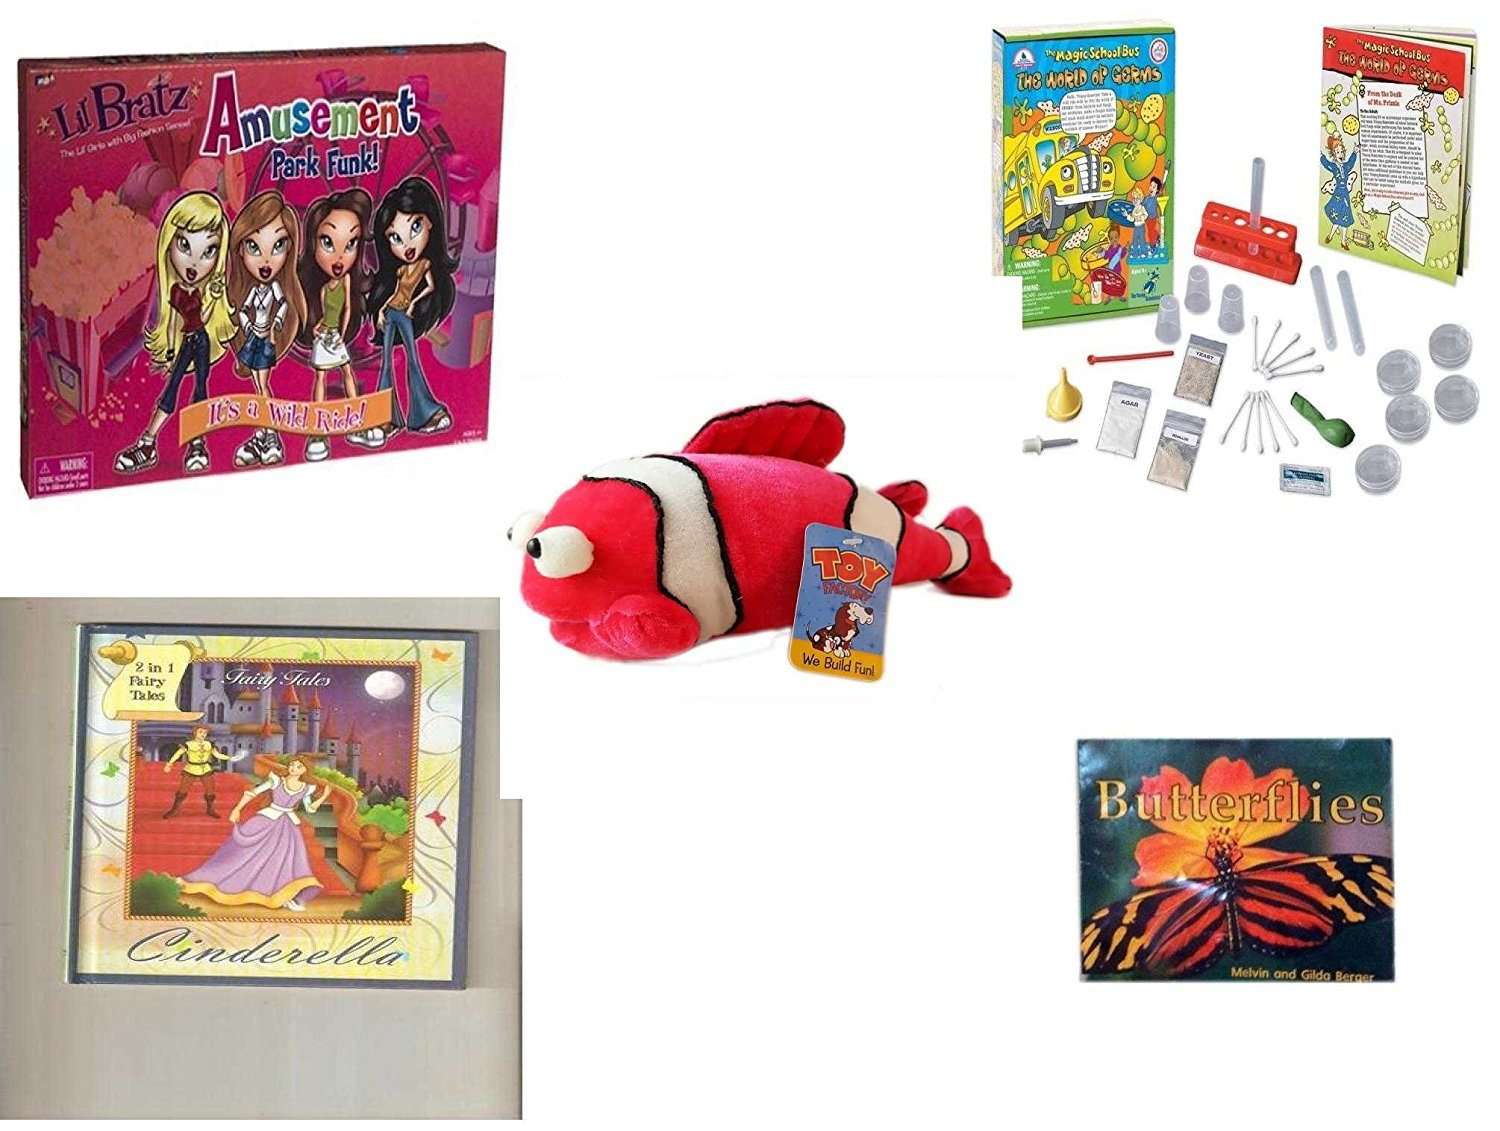 Children's Gift Bundle - Ages 3-5 [5 Piece] - Lil Bratz Game Amusement Park Funk. - The Magic School Bus: The World of Germs Toy - Toy Factory Coral Reef Fish Pink White Plush - 2 in 1 Fairy Tales: